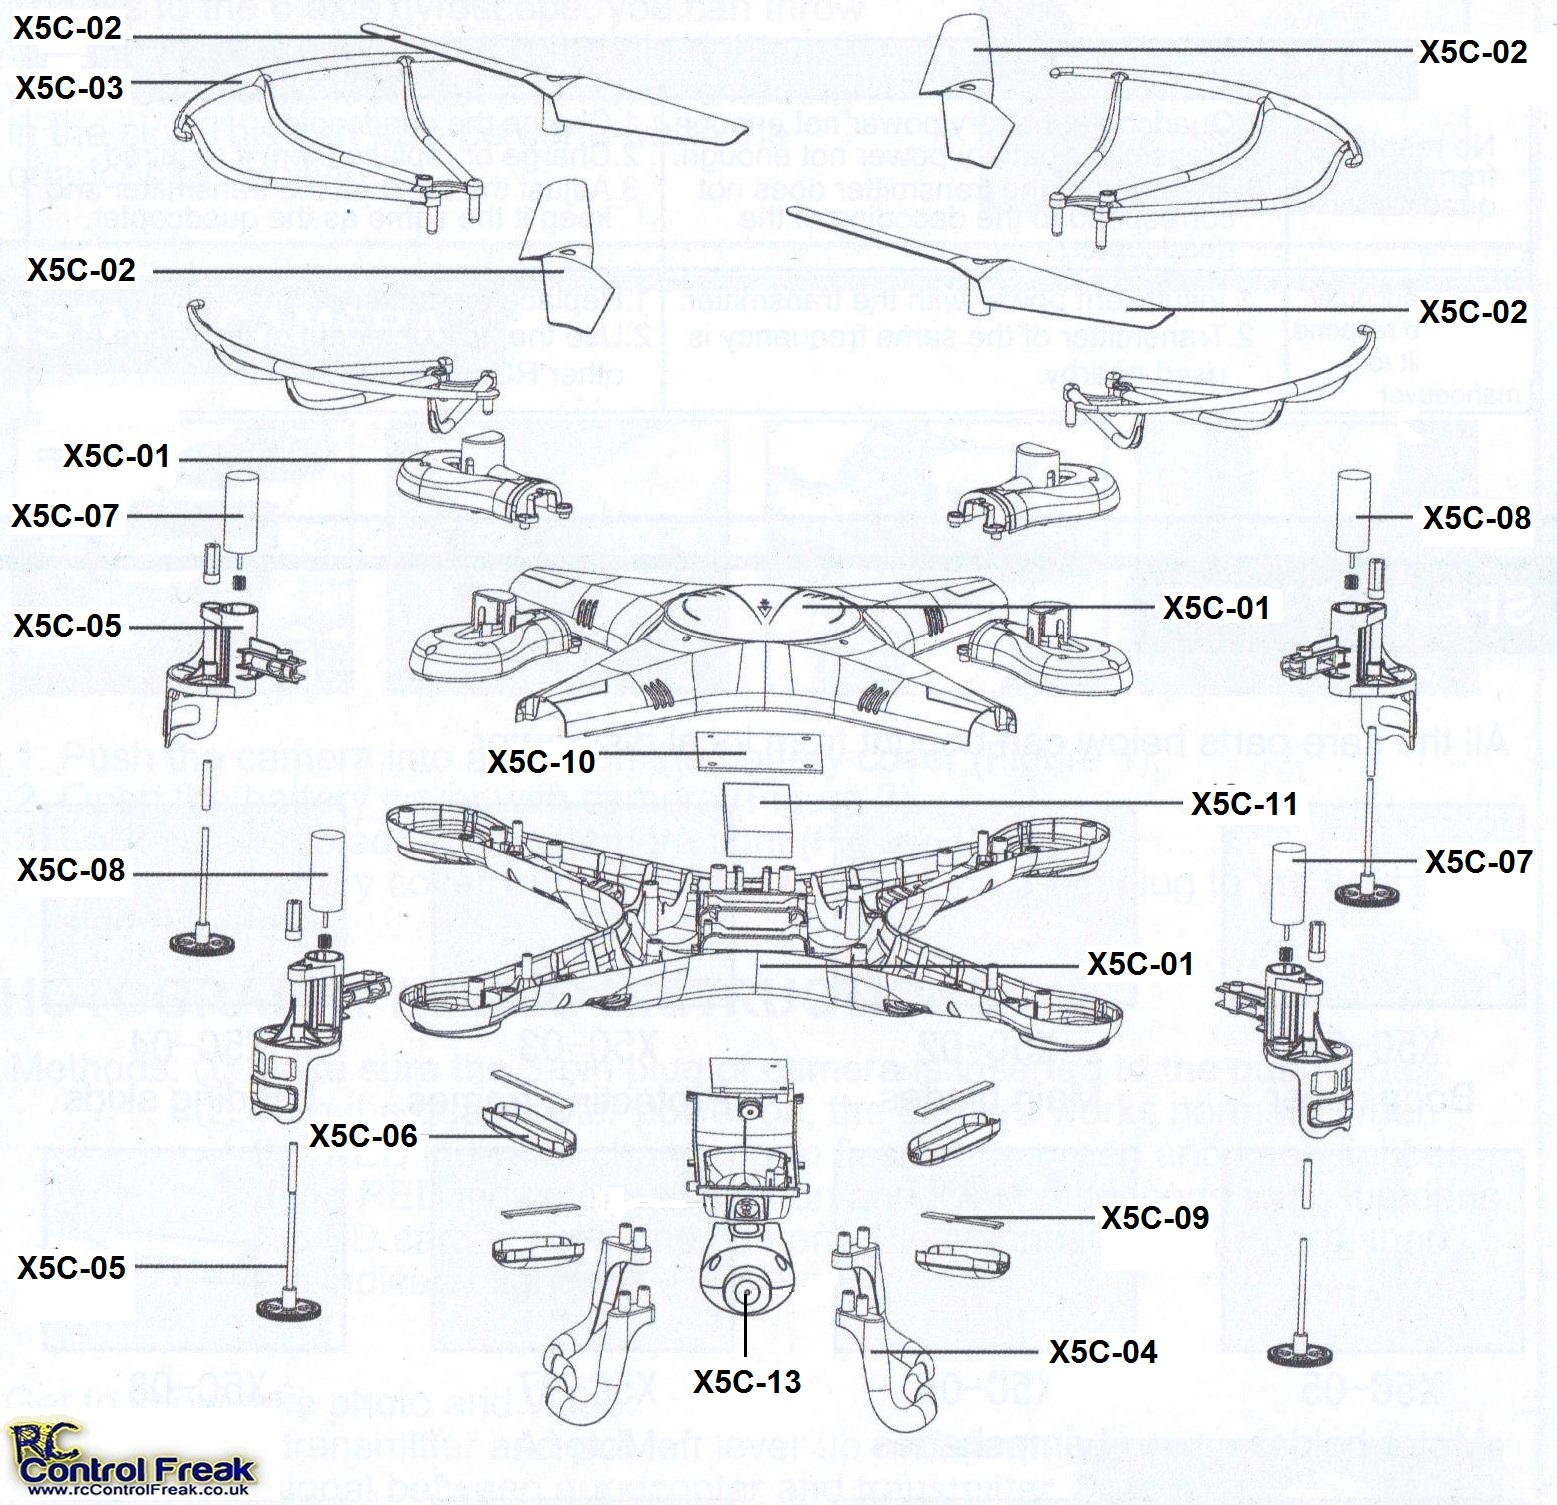 dji phantom 3 professional wiring diagram dji phantom 2